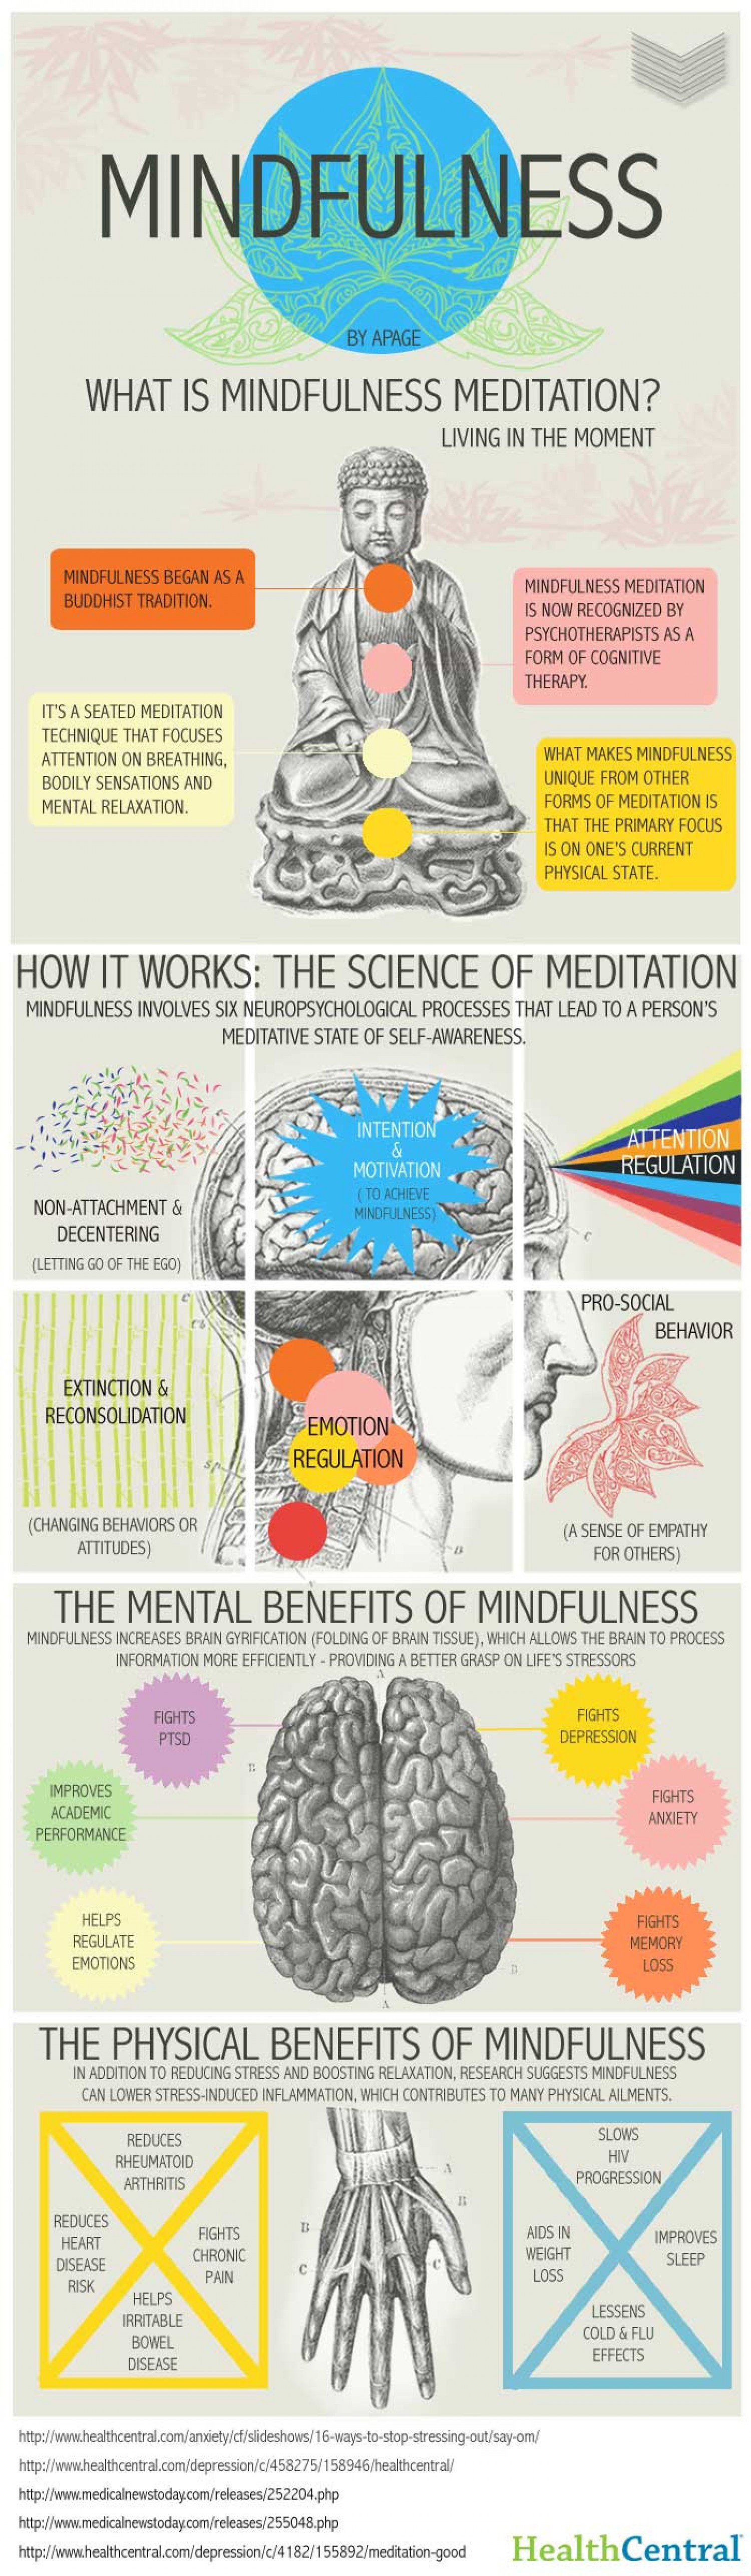 Mindfulness Form of Cognitive Therapy